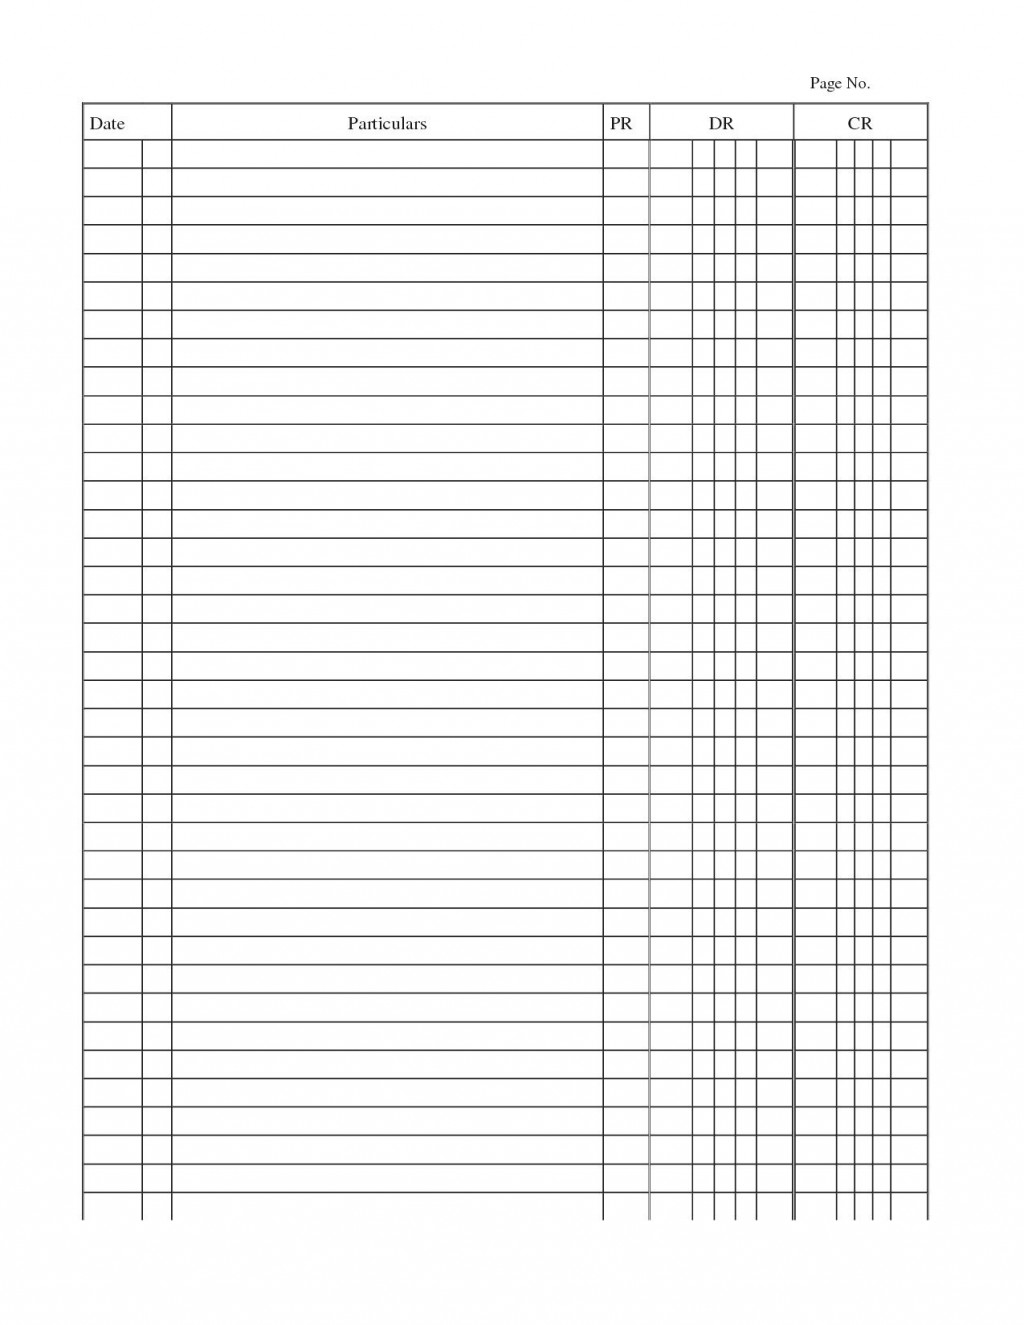 000 Impressive Accounting Journal Entry Template Highest Quality  Blank Download FreeLarge